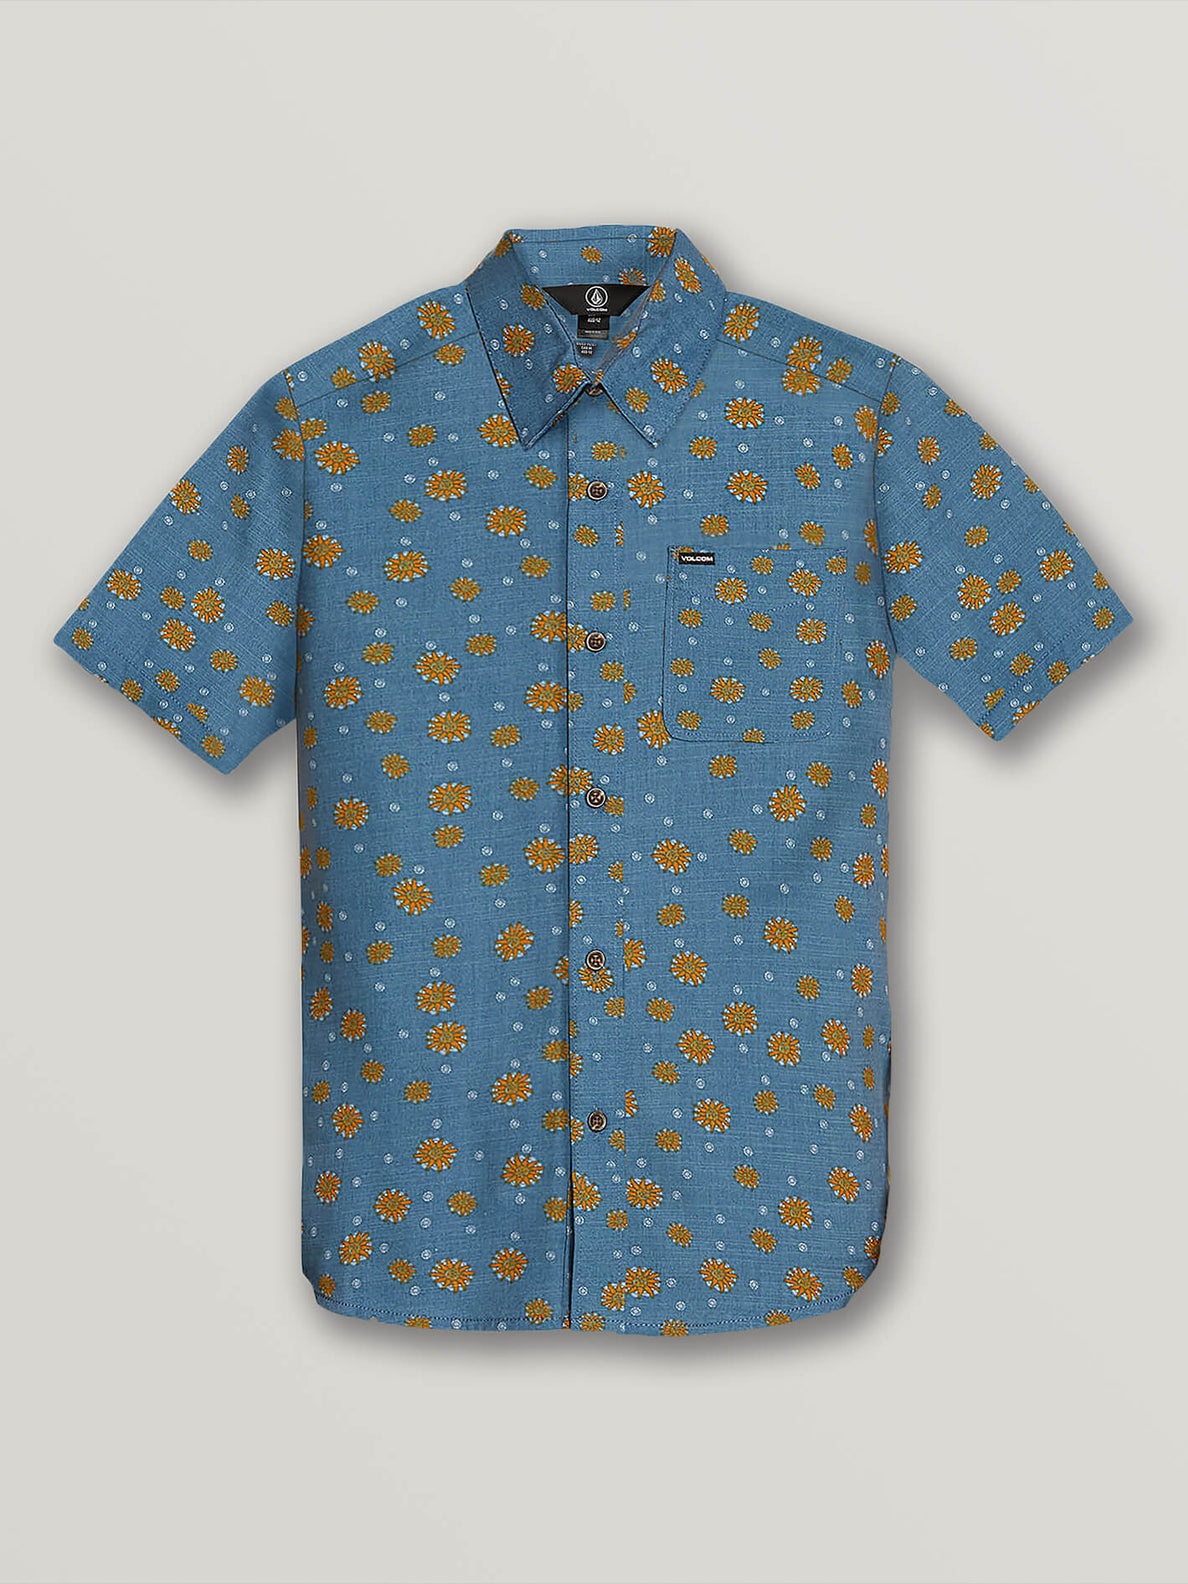 Big Boys Psych Dot Short Sleeve Shirt In Indigo, Front View